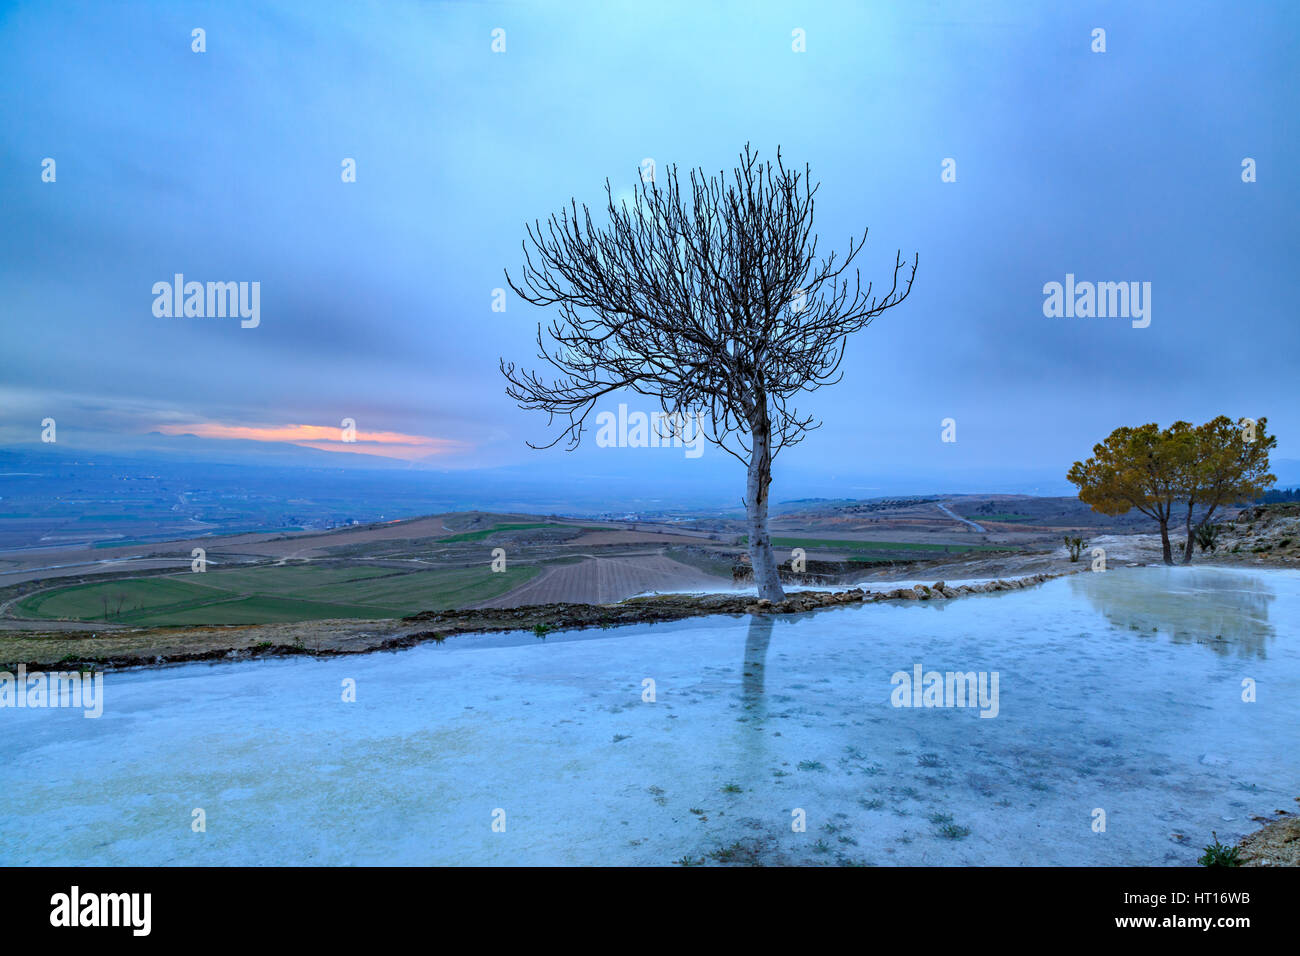 Bare tree with reflection on travertine of Pamukkale - Stock Image